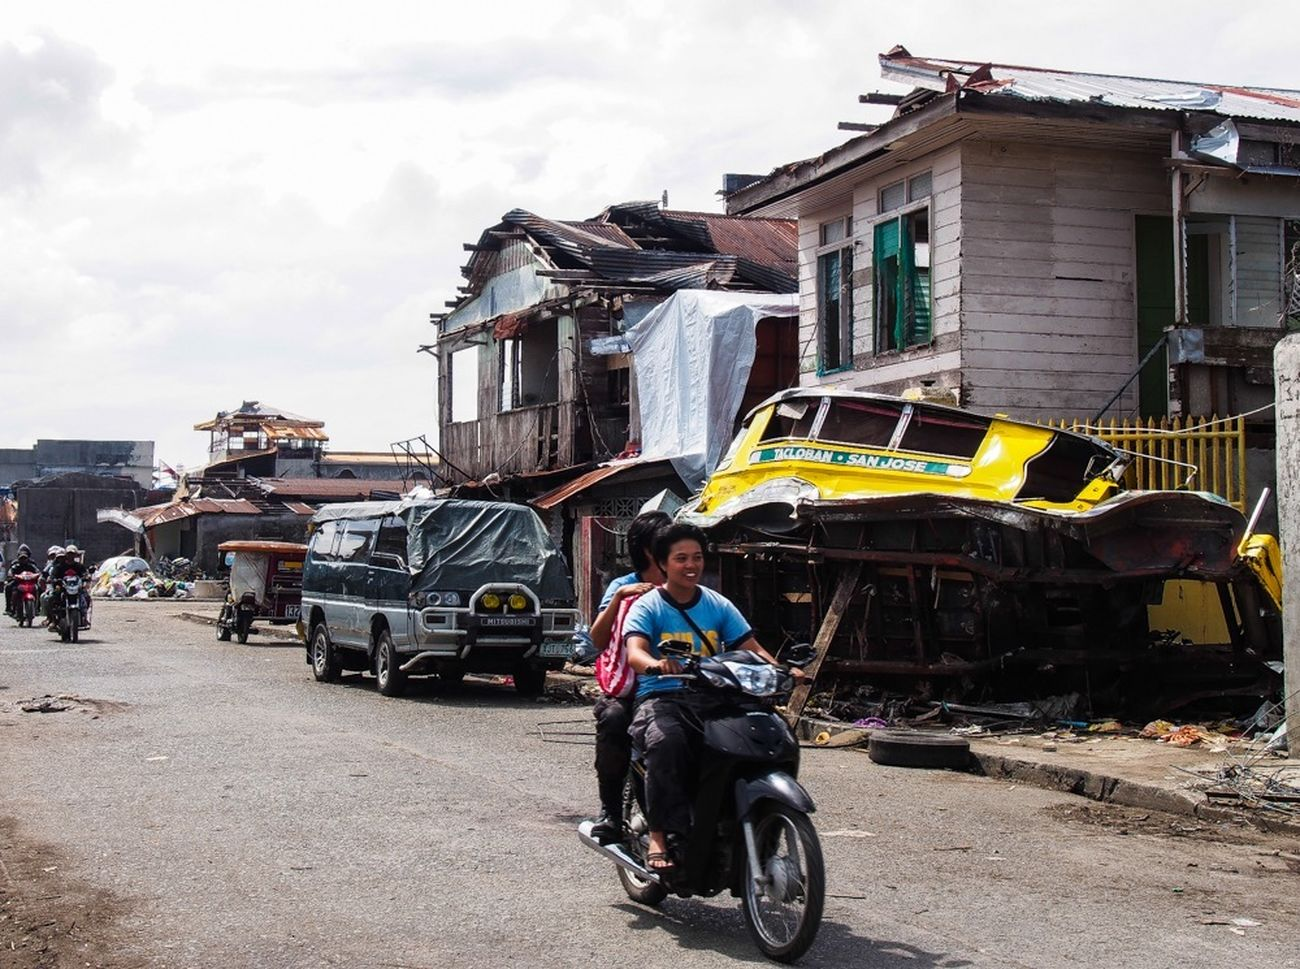 Police officers riding through the devastated streets of Tacloban, more than one month after Typhoon Haiyan . EyeEmbestshots Streetphotography Documentary